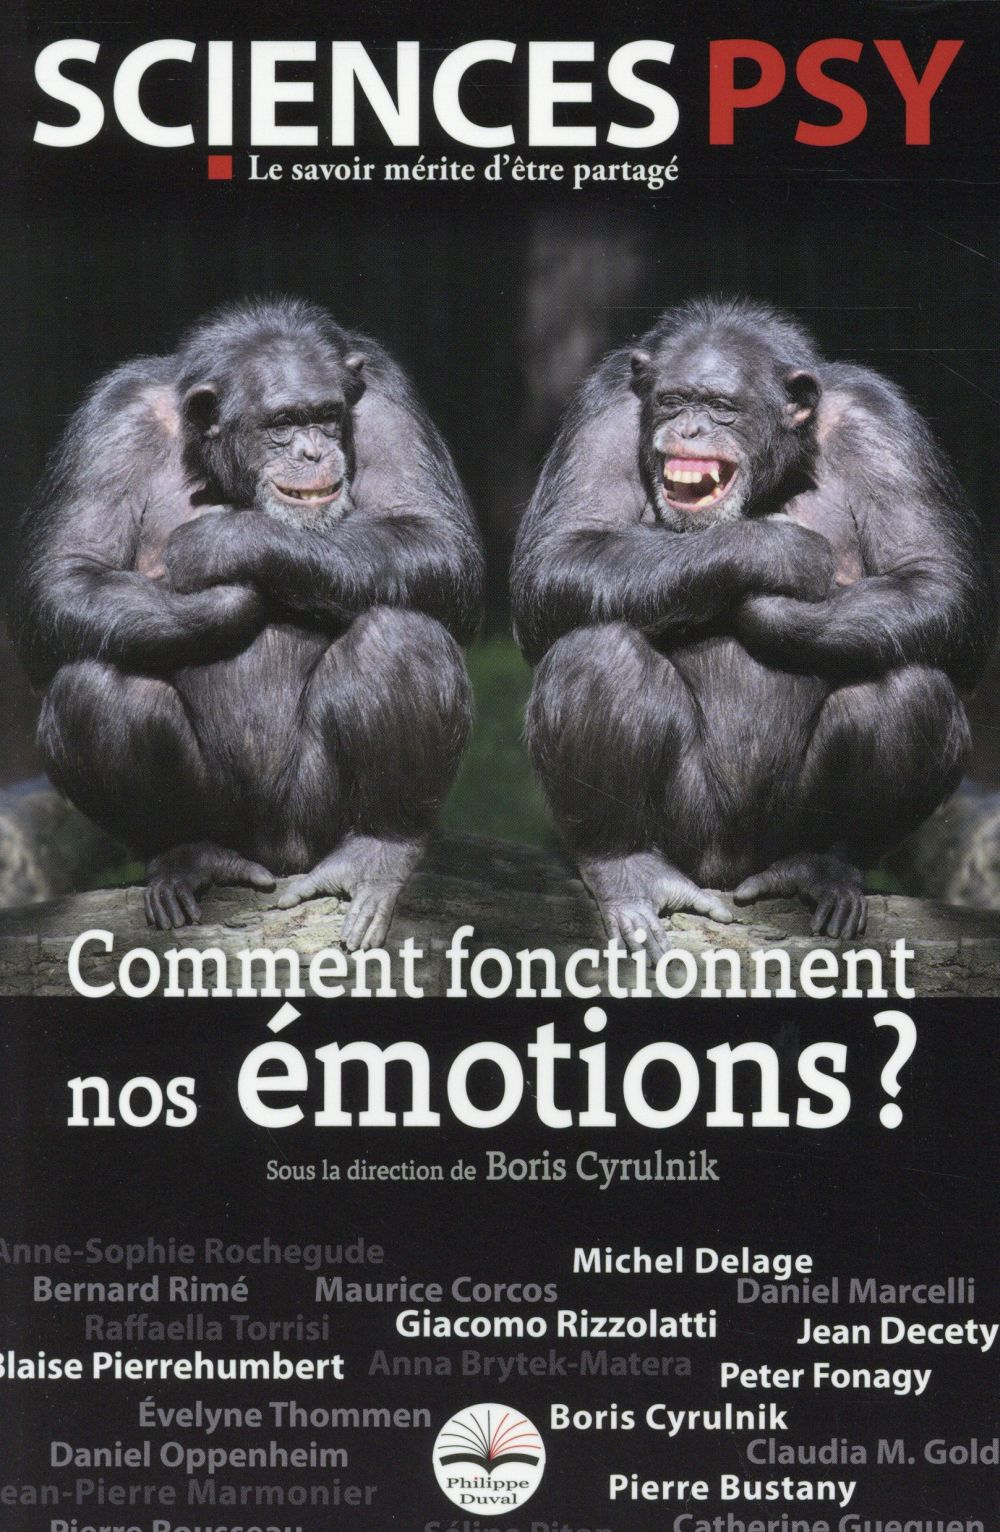 COMMENT FONCTIONNENT NOS EMOTIONS ?